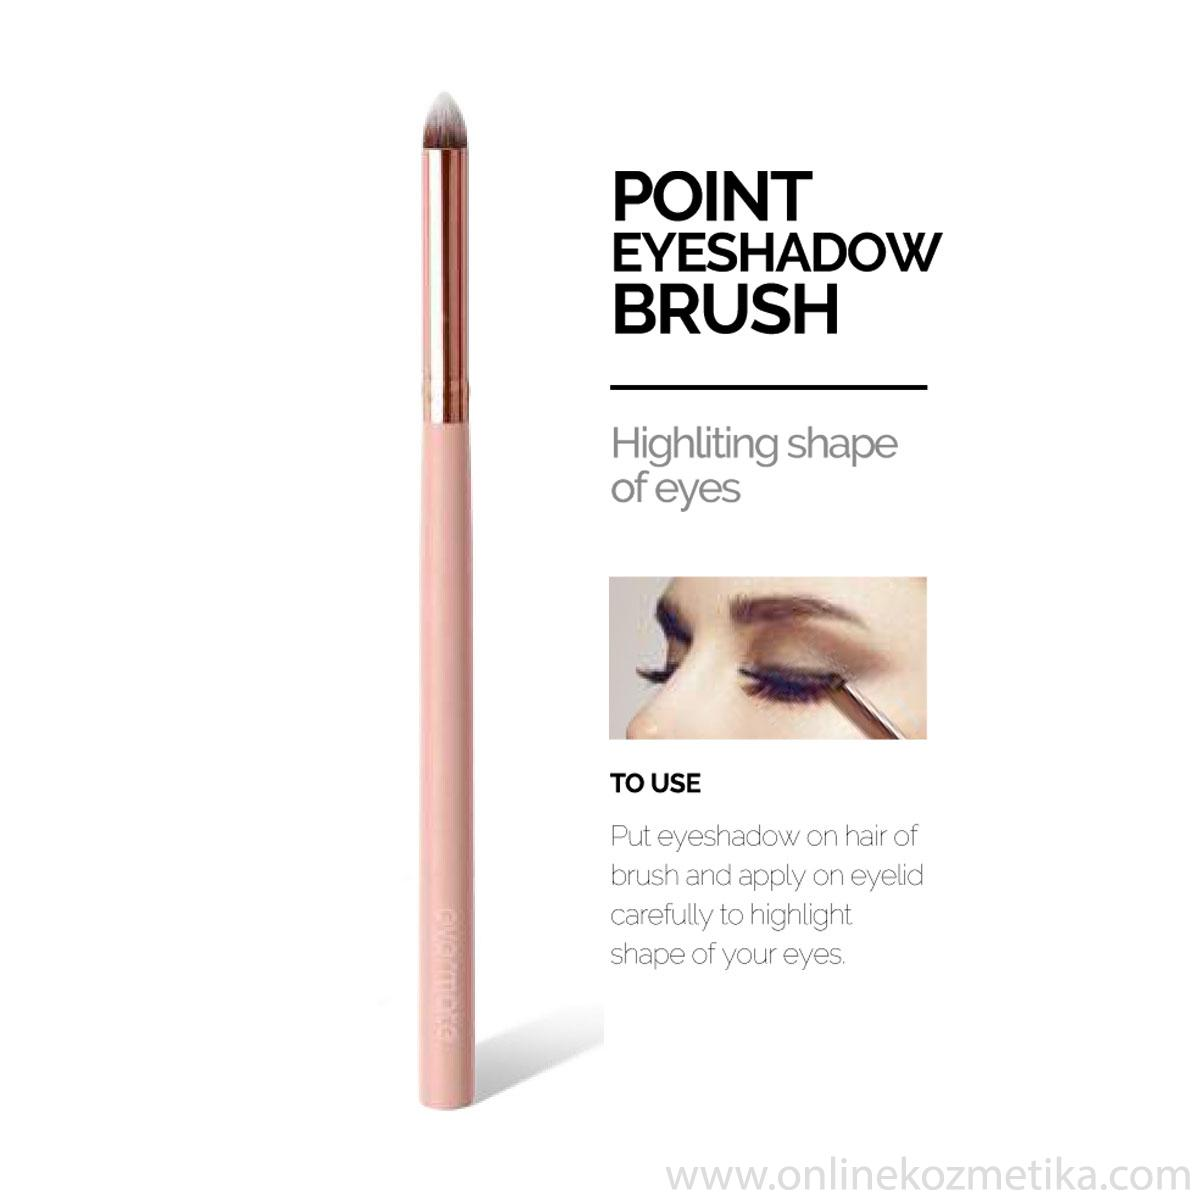 EM POINT EYESHADOW BRUSH